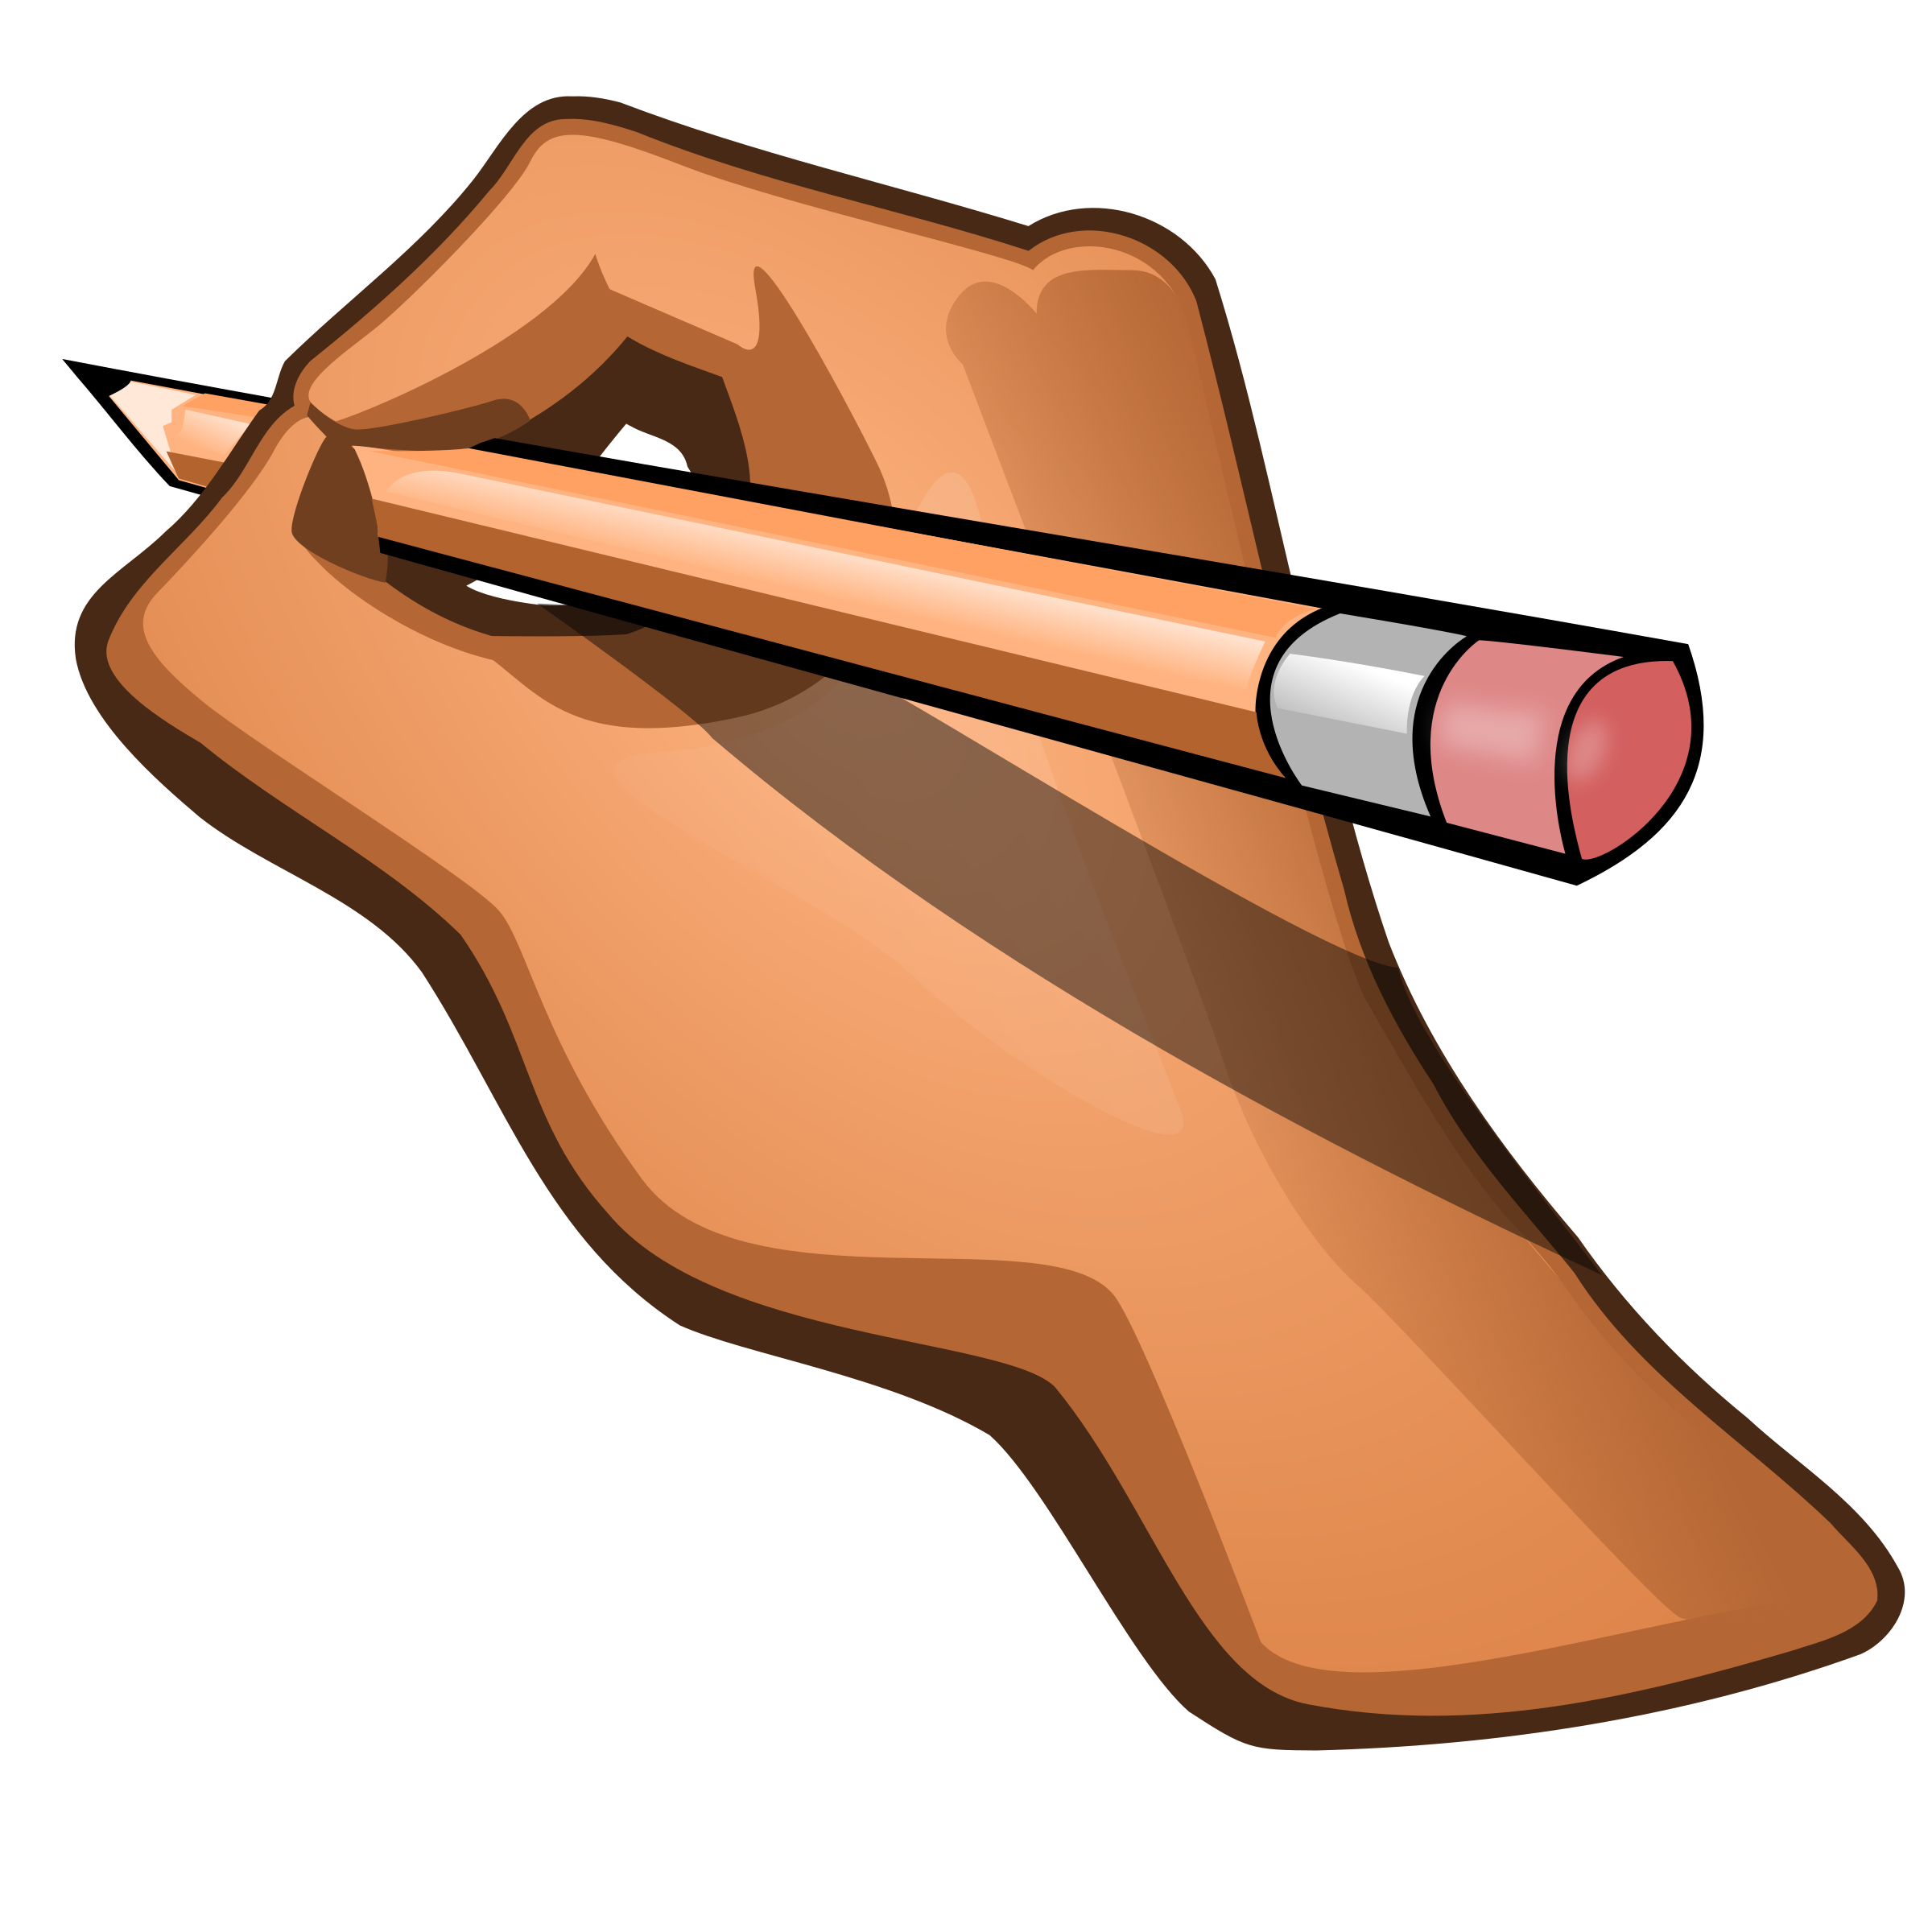 Pencil In Hand Clipart - Clipart Kid